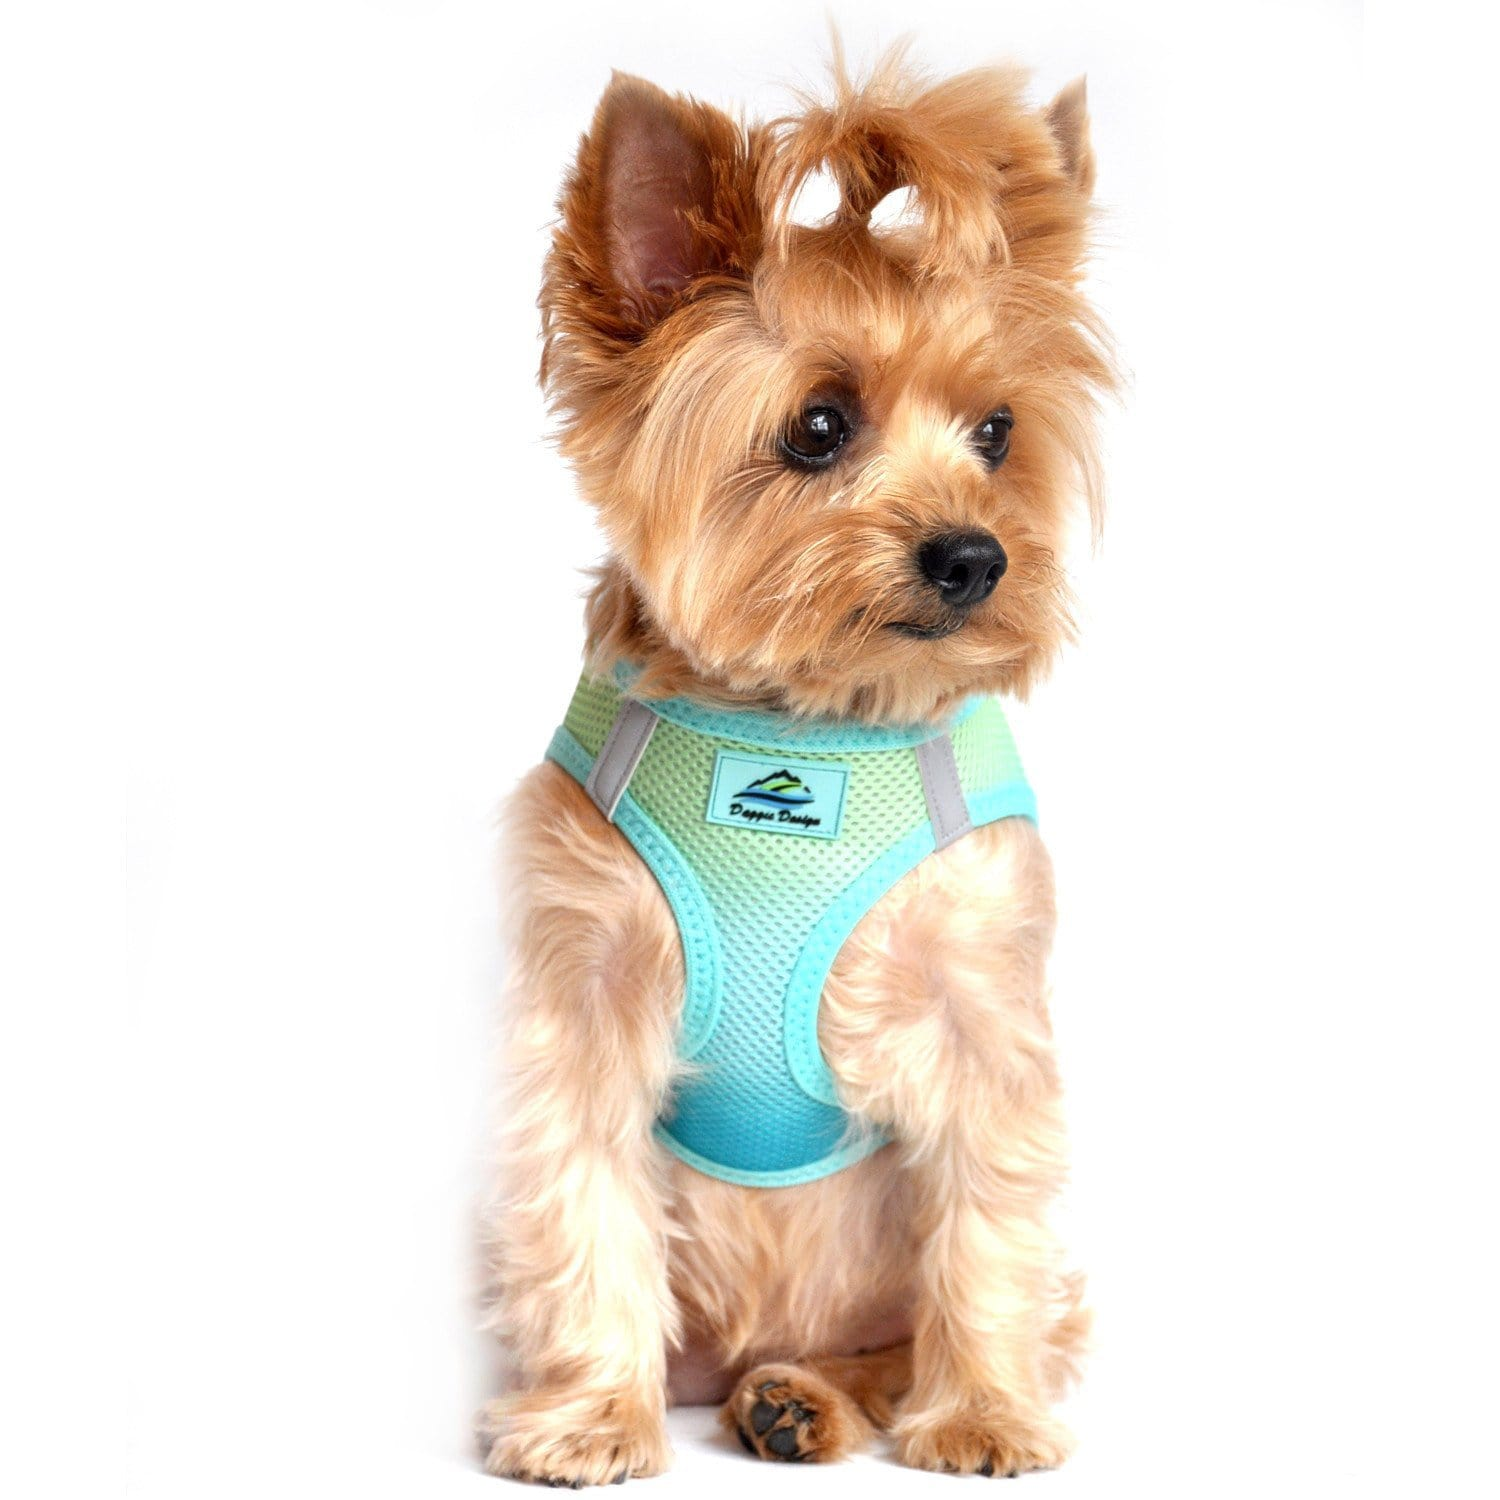 Step-in dog harness - Aruba Blue